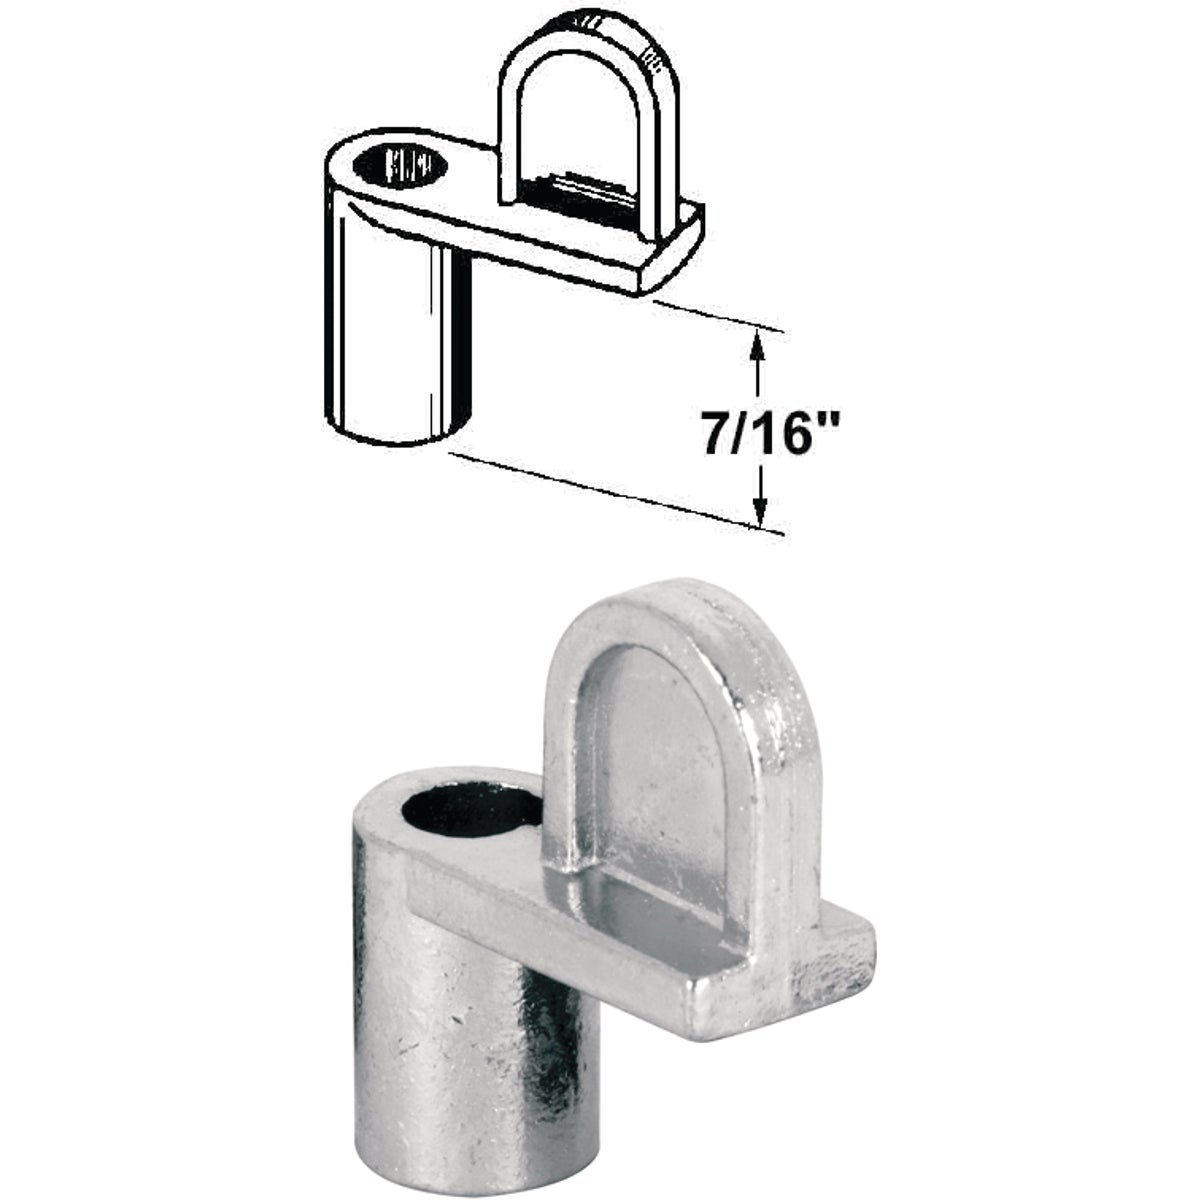 Swivel Die-cast Screen Clips with Screws